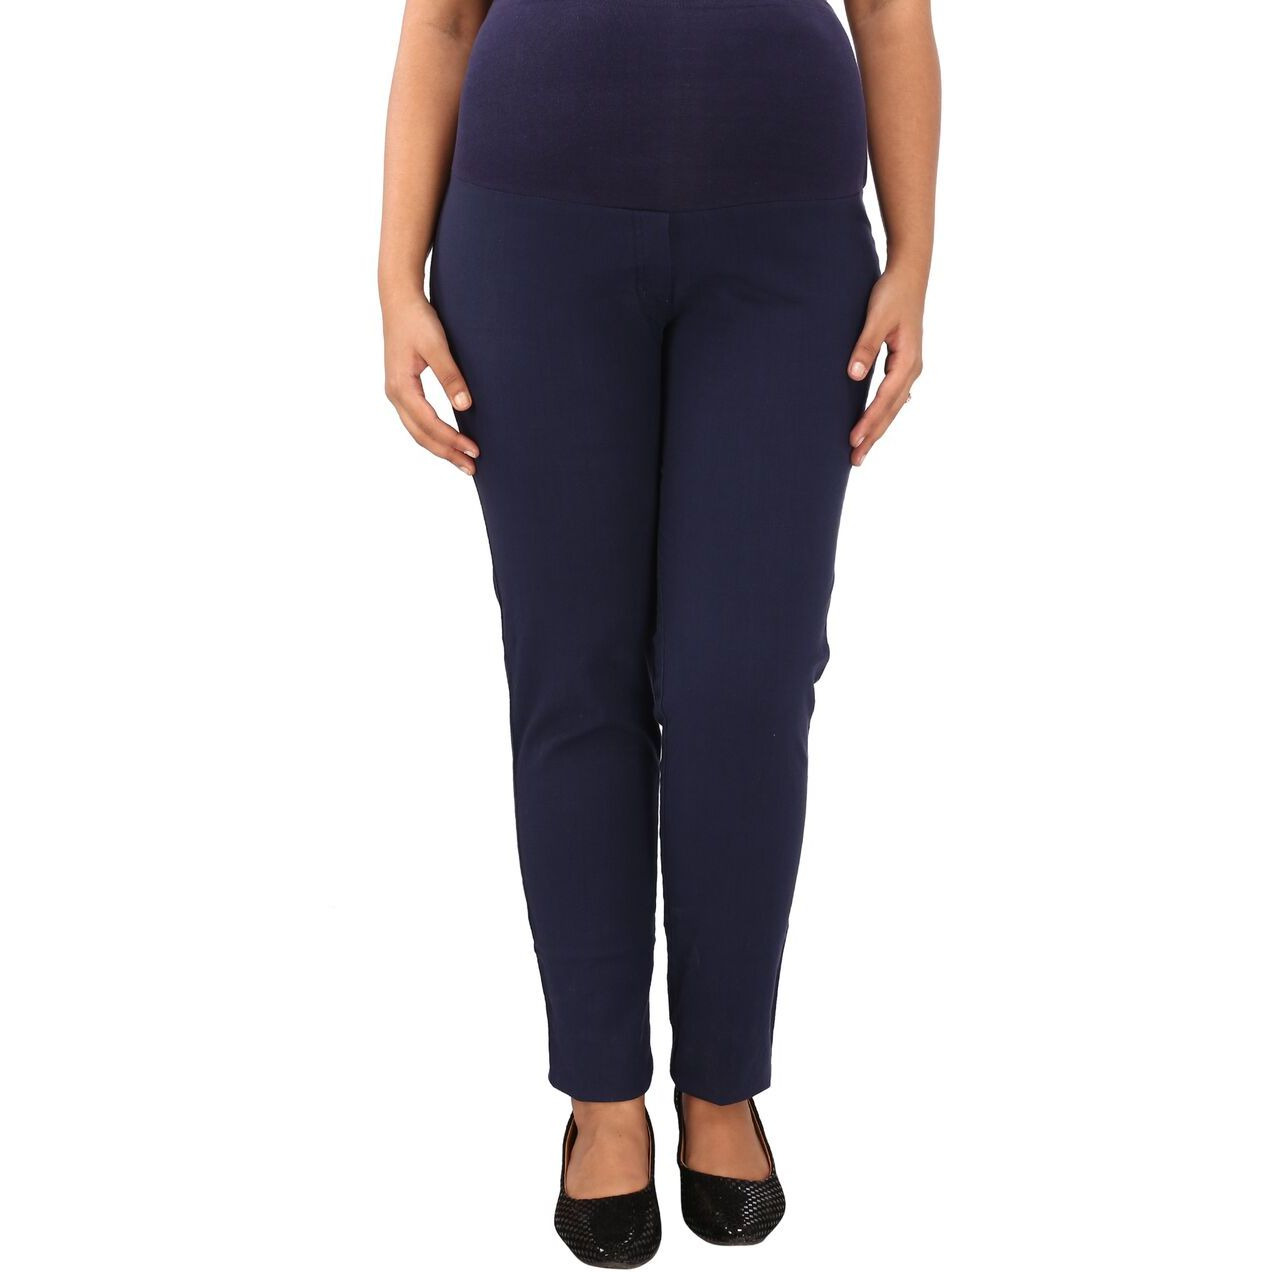 Buy Online Mamma S Maternity Women S Navy Blue Linen Trouser From Usa Zifiti Com Page